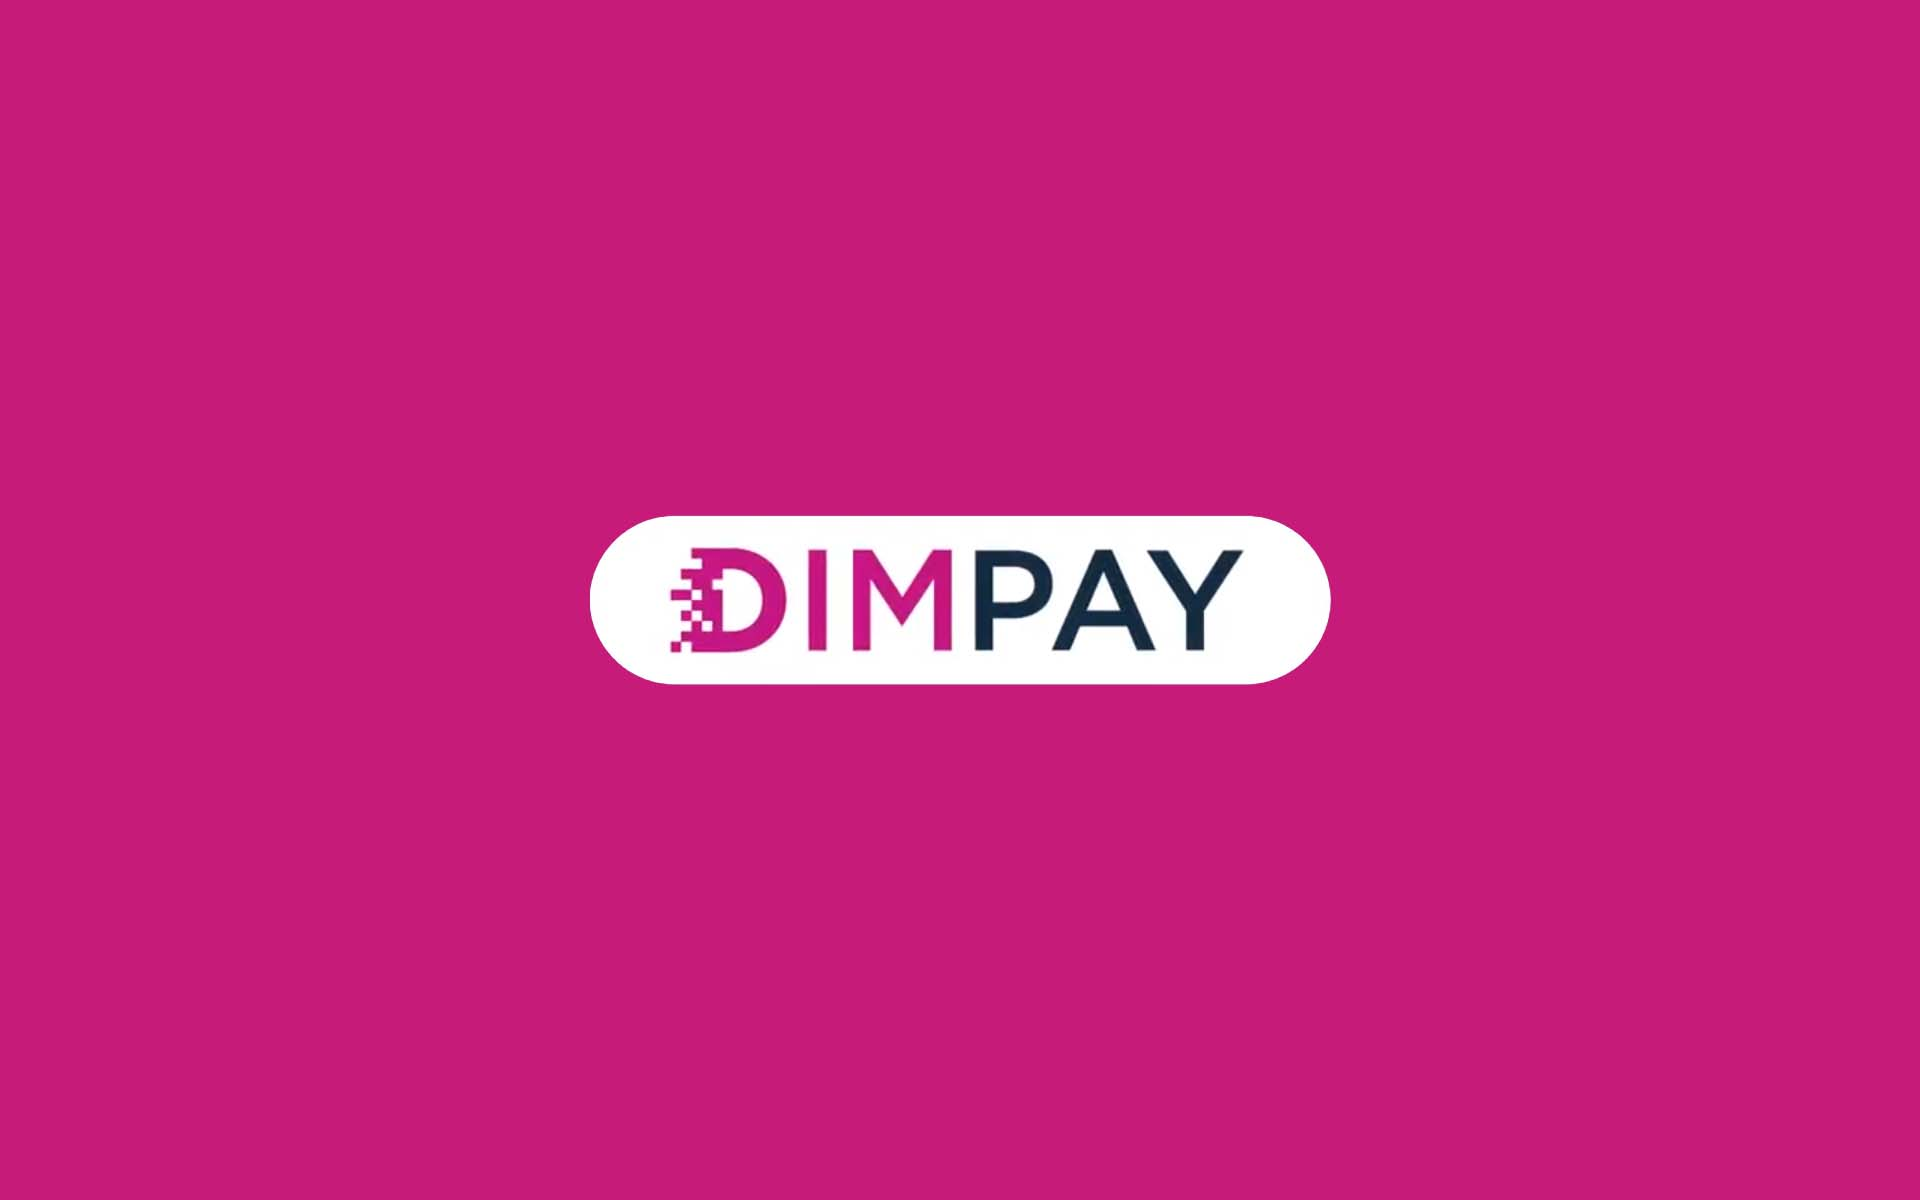 DIMPAY - Cashless Transaction Available Worldwide